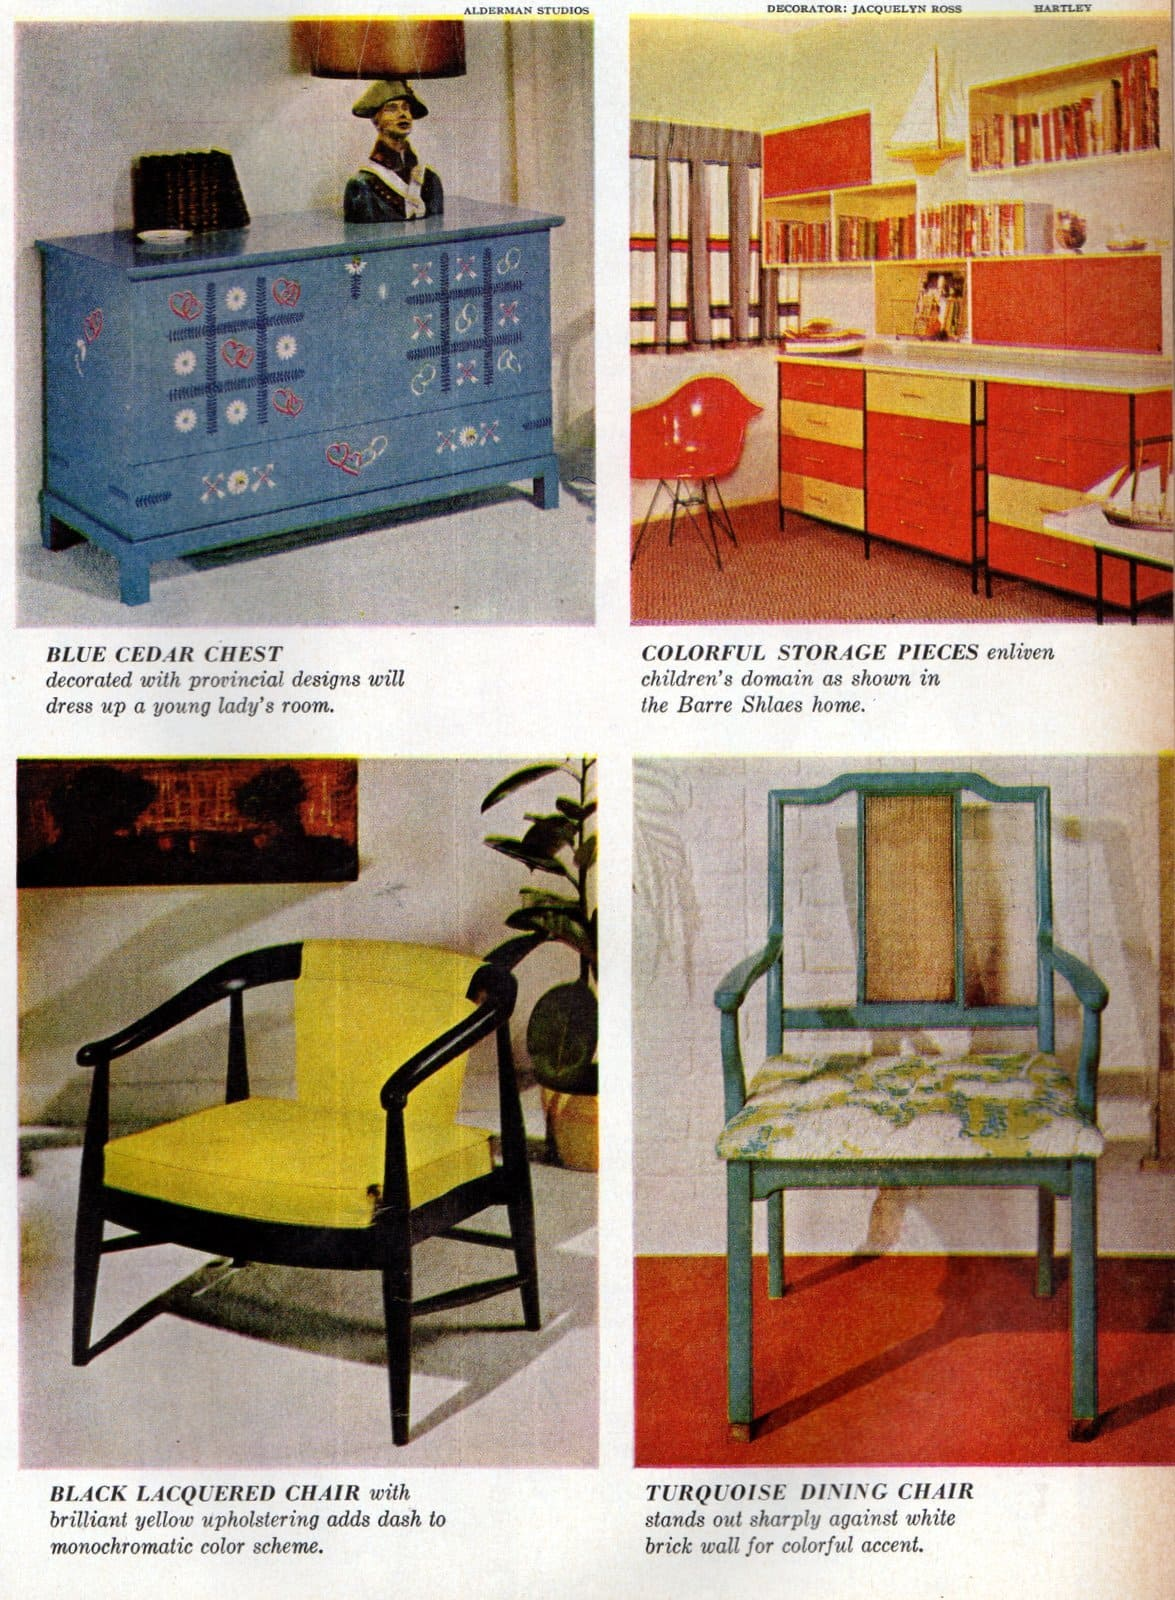 Colorful furniture as vintage home accents